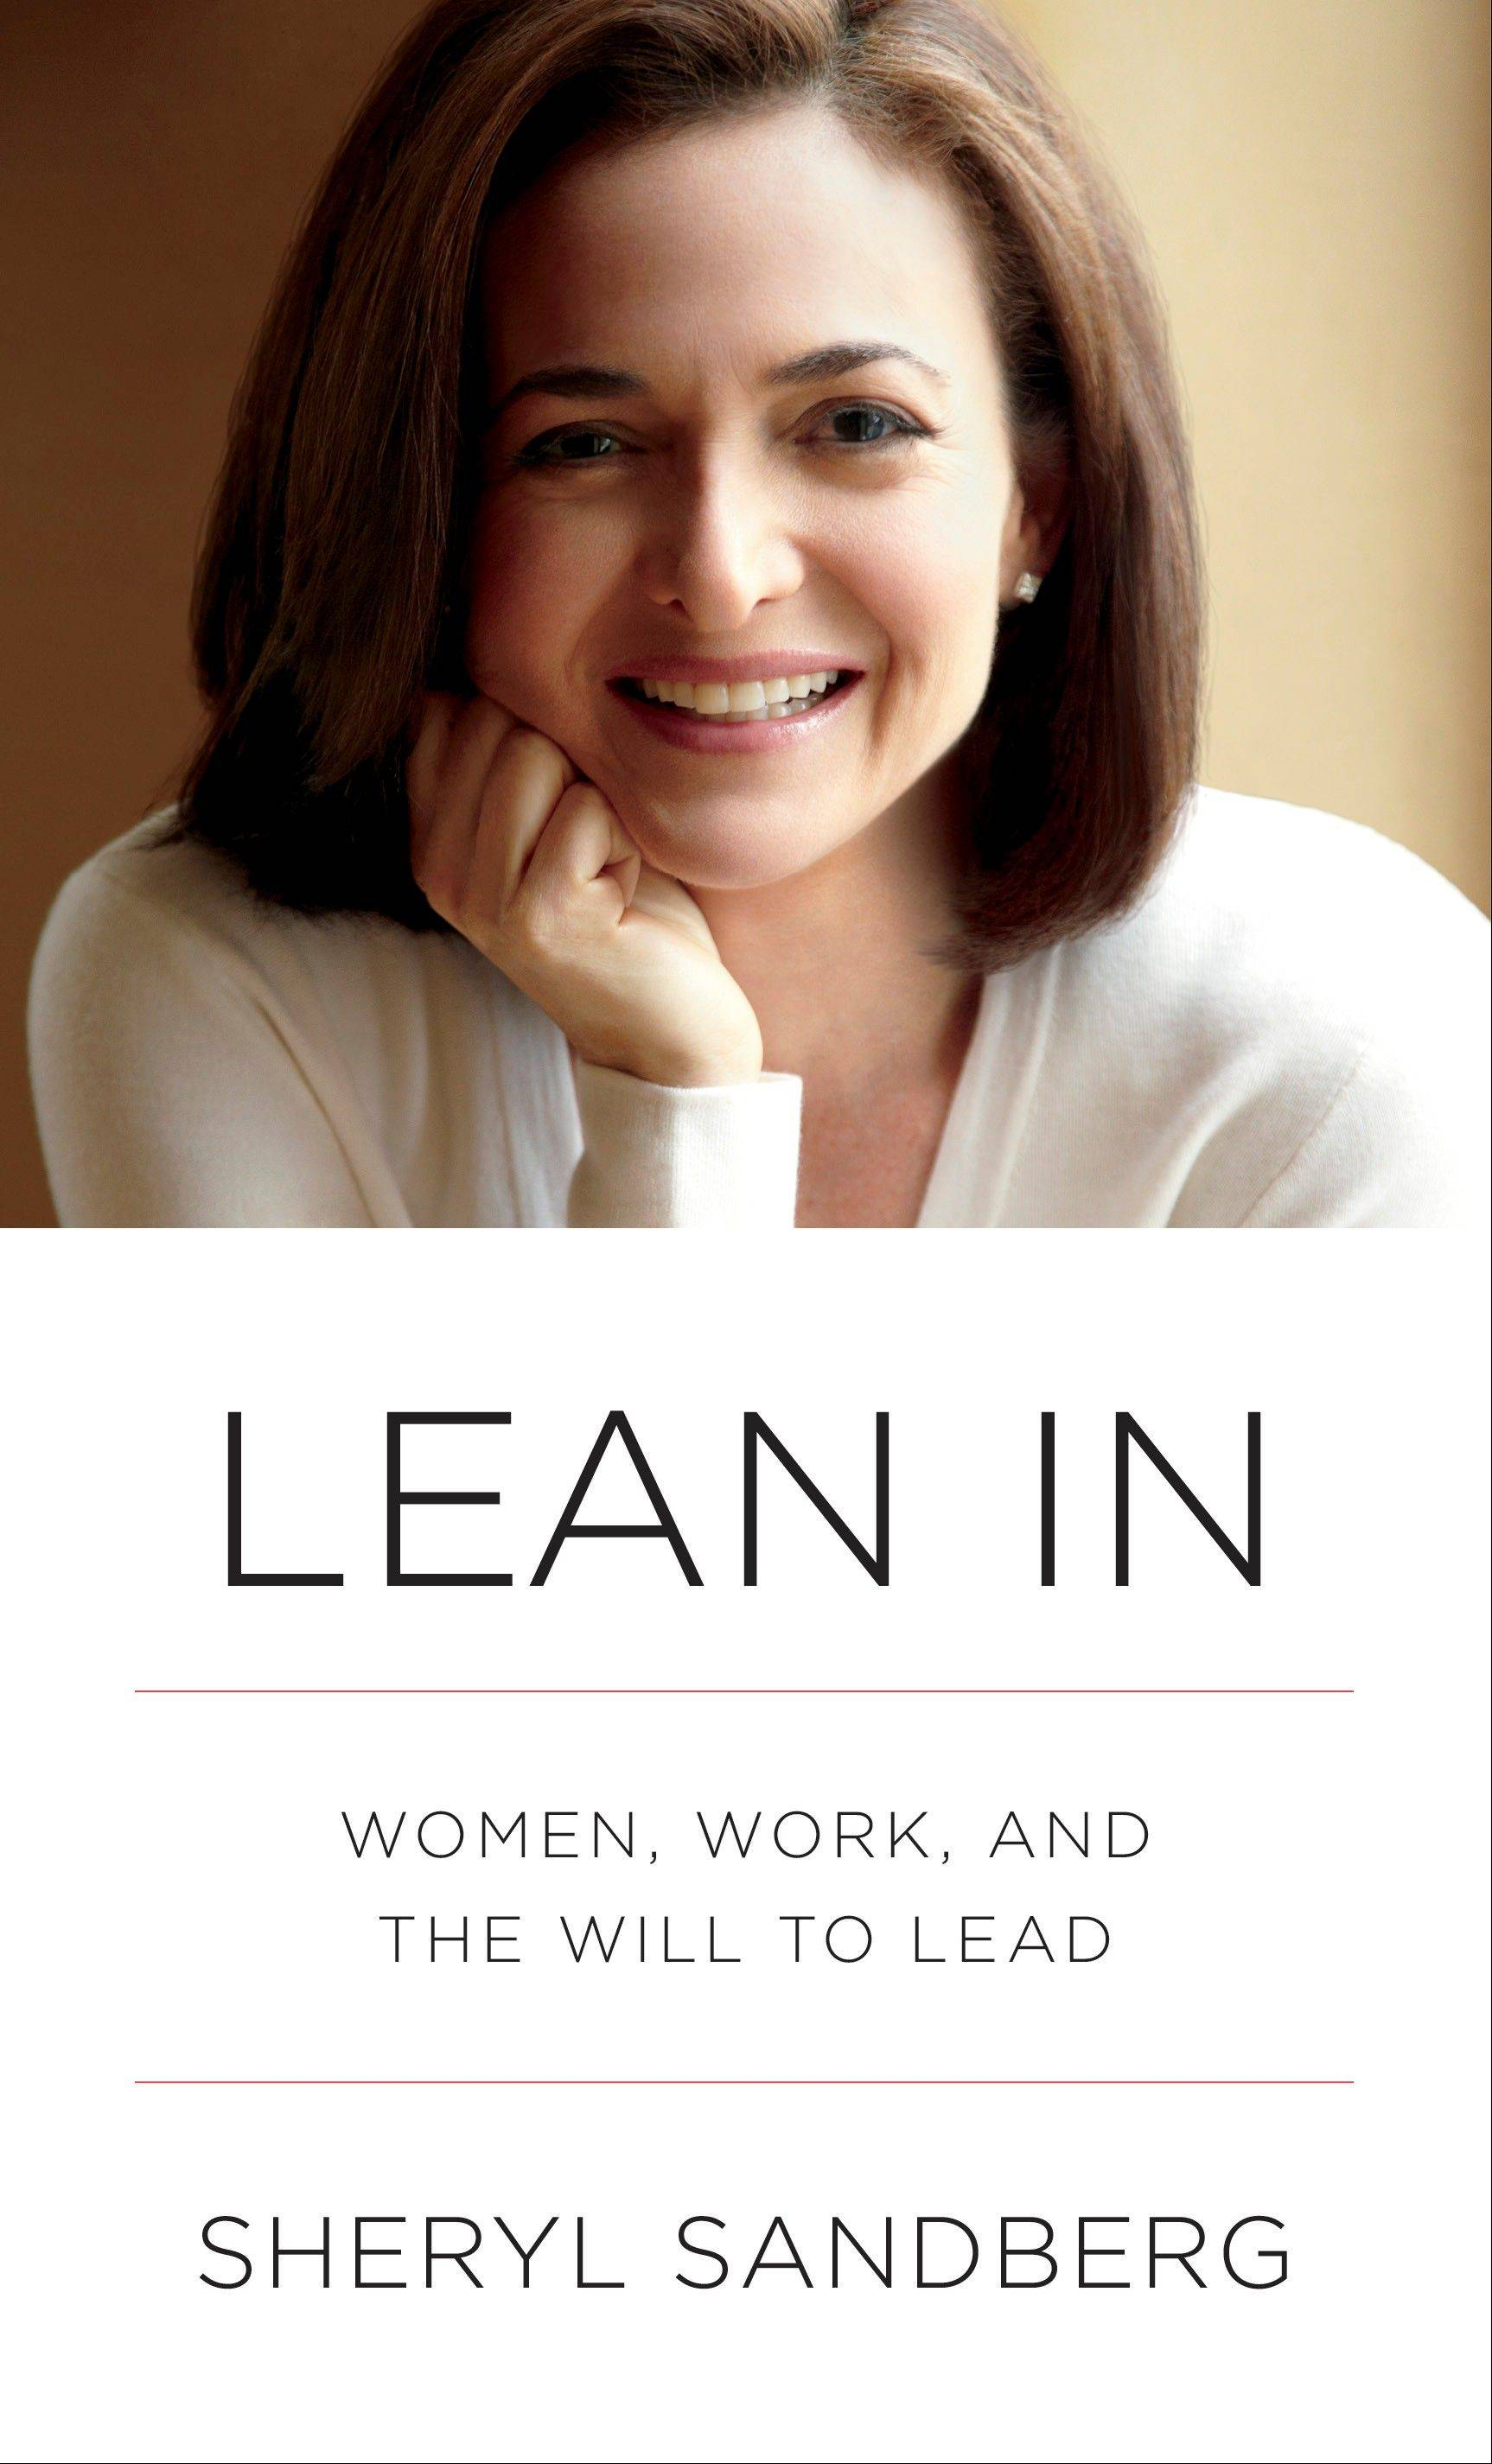 """Lean In: Women, Work, and the Will to Lead"" by Sheryl Sandberg"